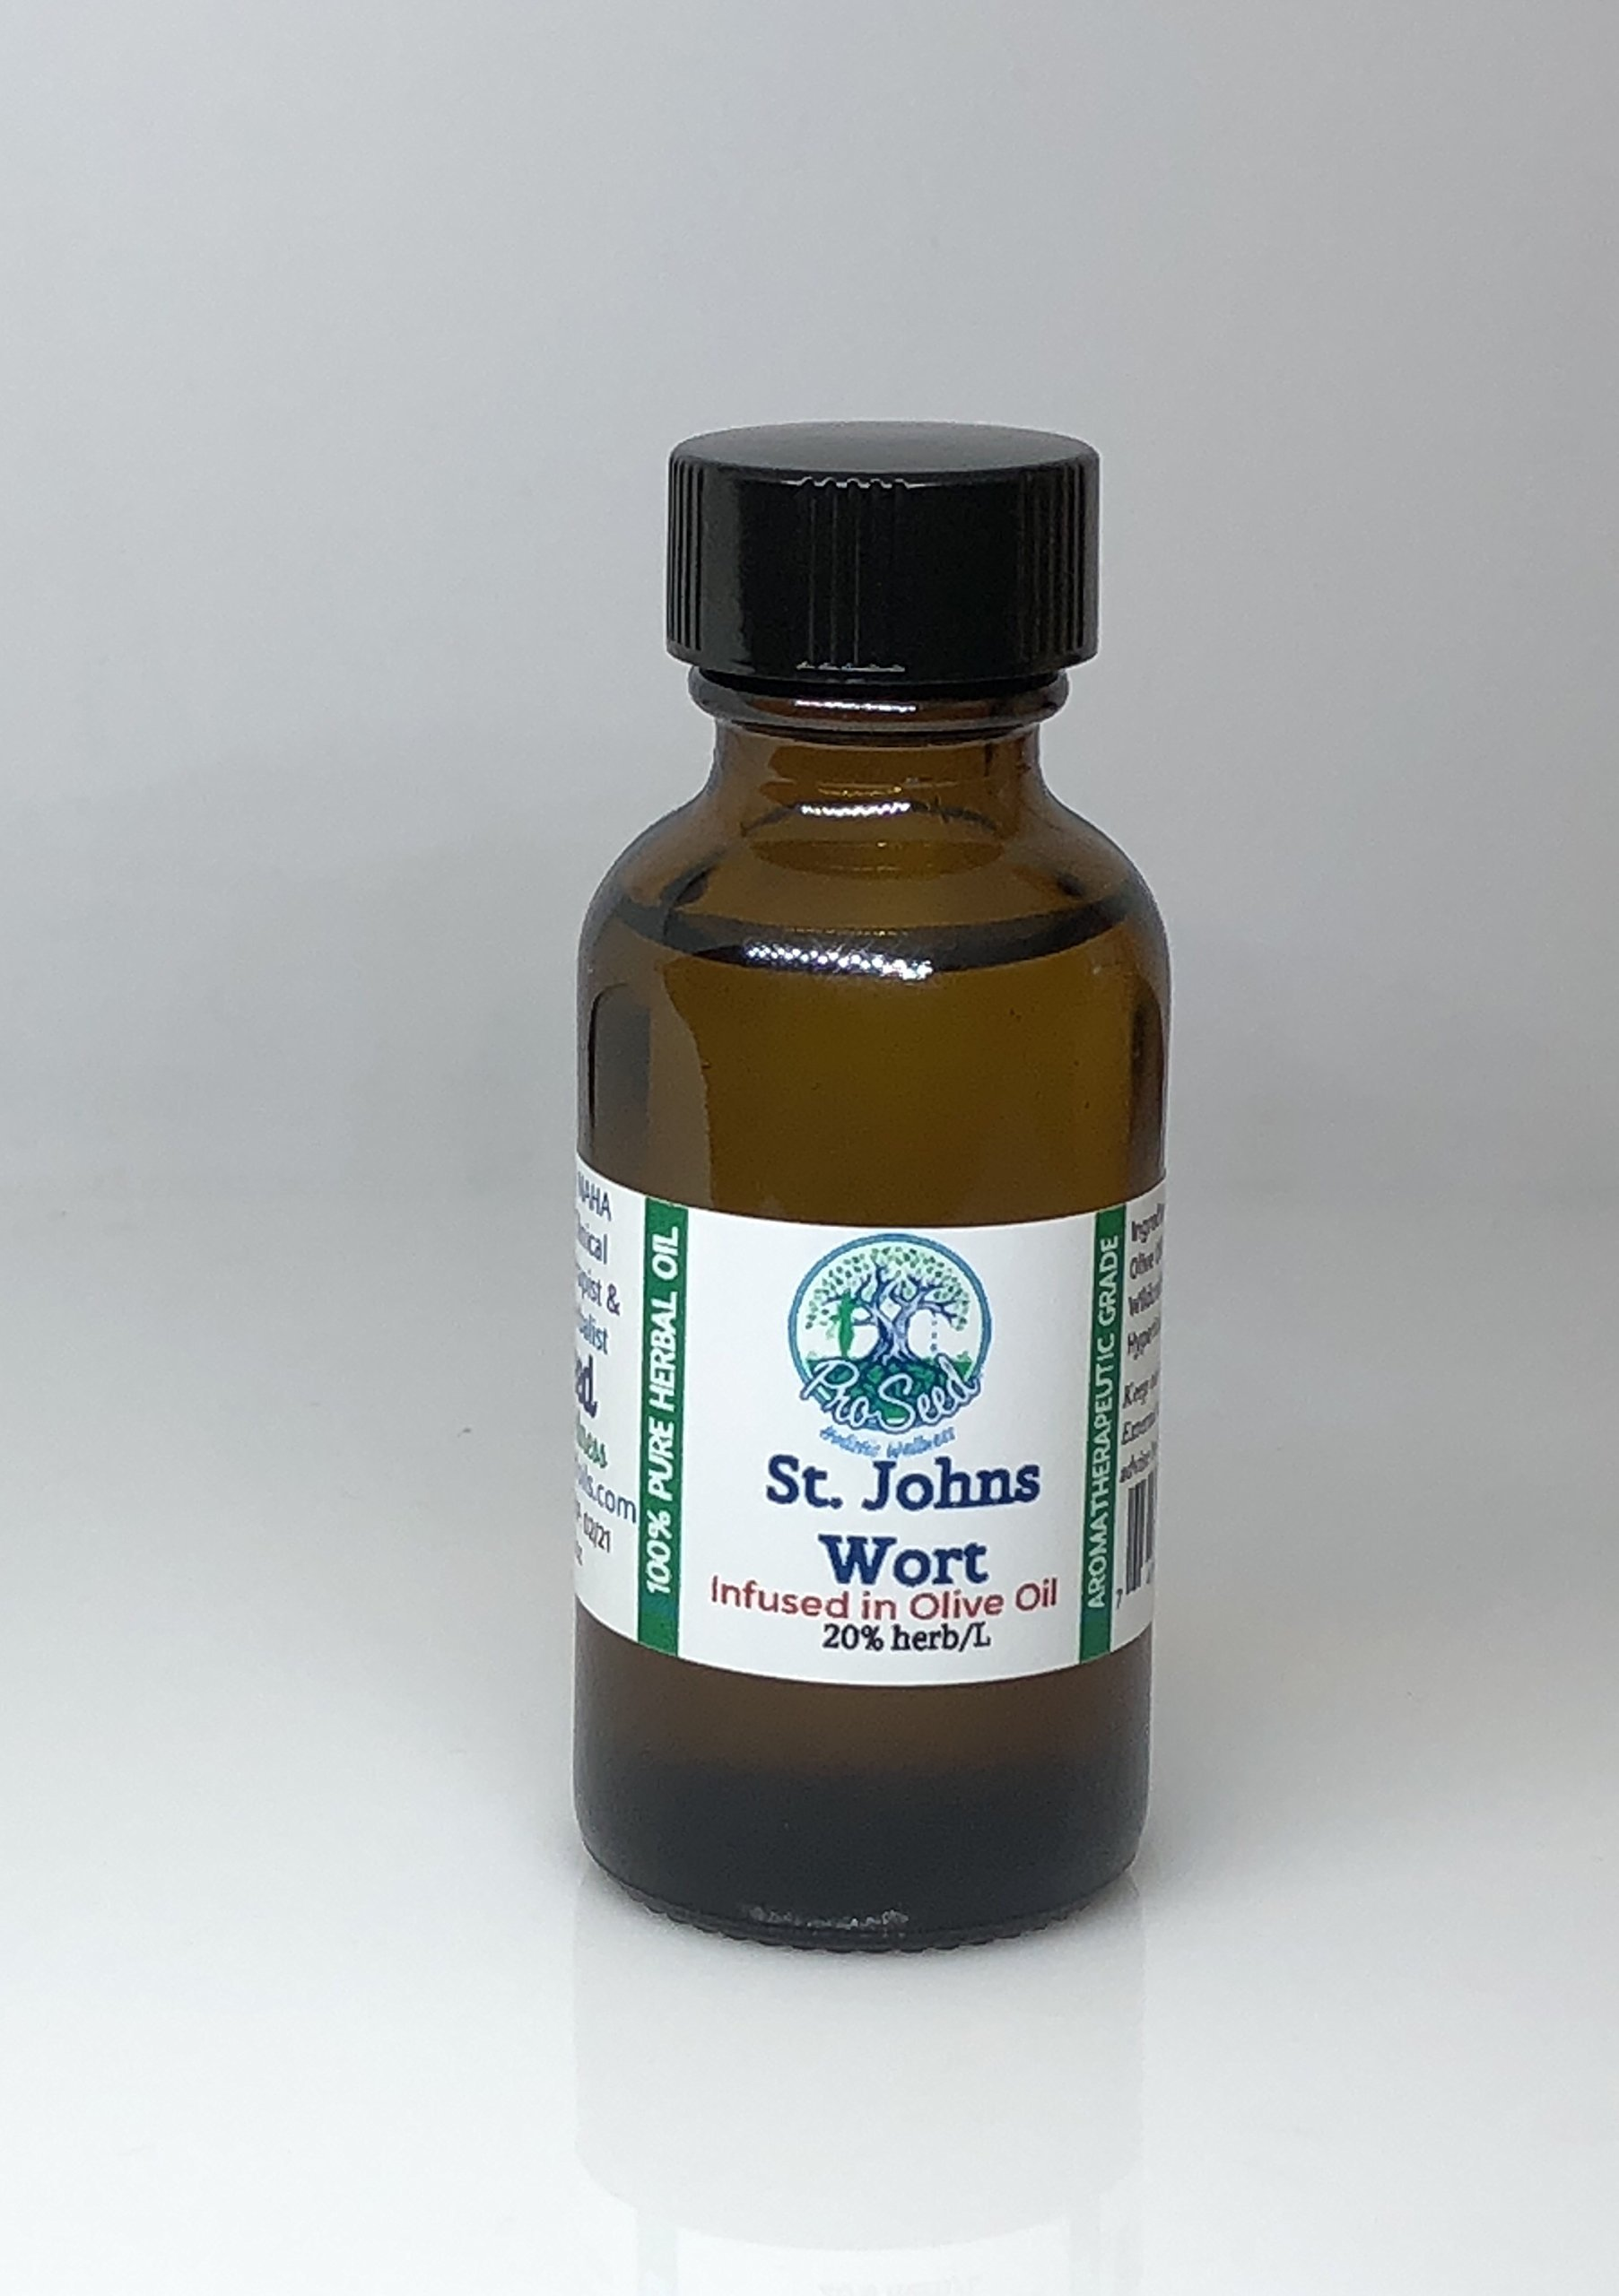 ProSeed Wildcrafted St.JOHN WORT Oil | Anti- Inflammatory and Wound Healing | Cuts and Scrapes | Bruise Oil | Vegan | Herbalist Made | 1oz